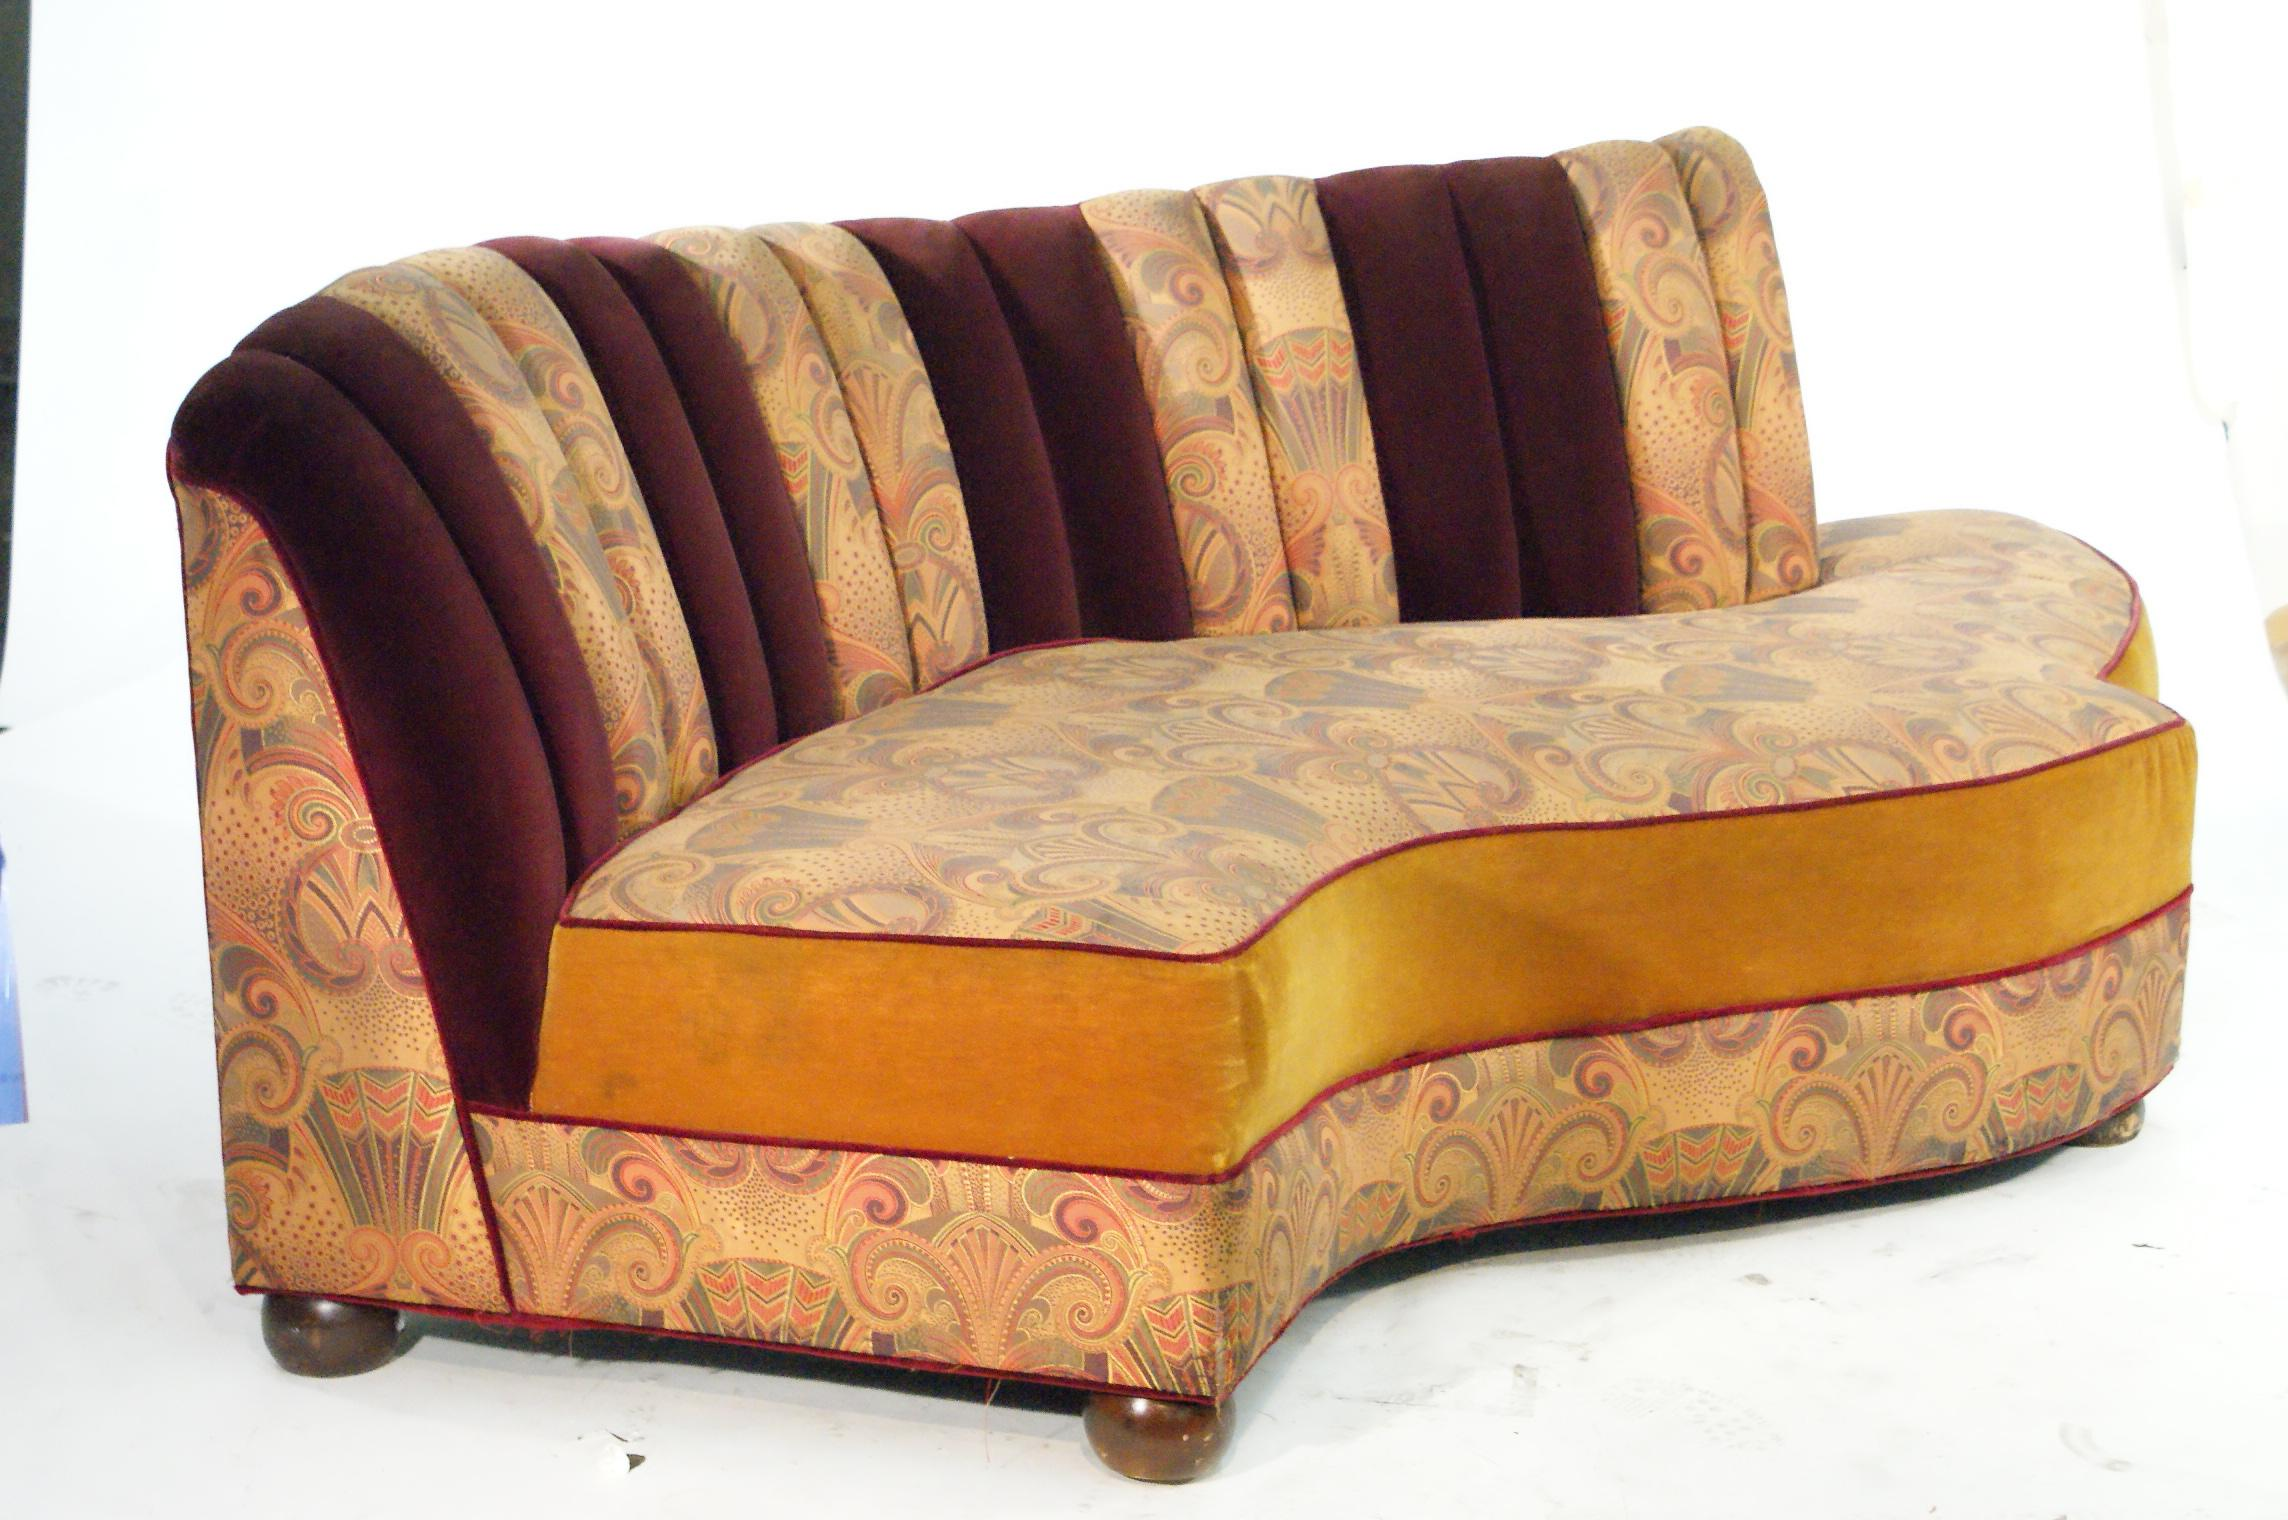 Image 1 Vintage Jazz Style Kidney Shaped Art Deco Sofa With Shell Back